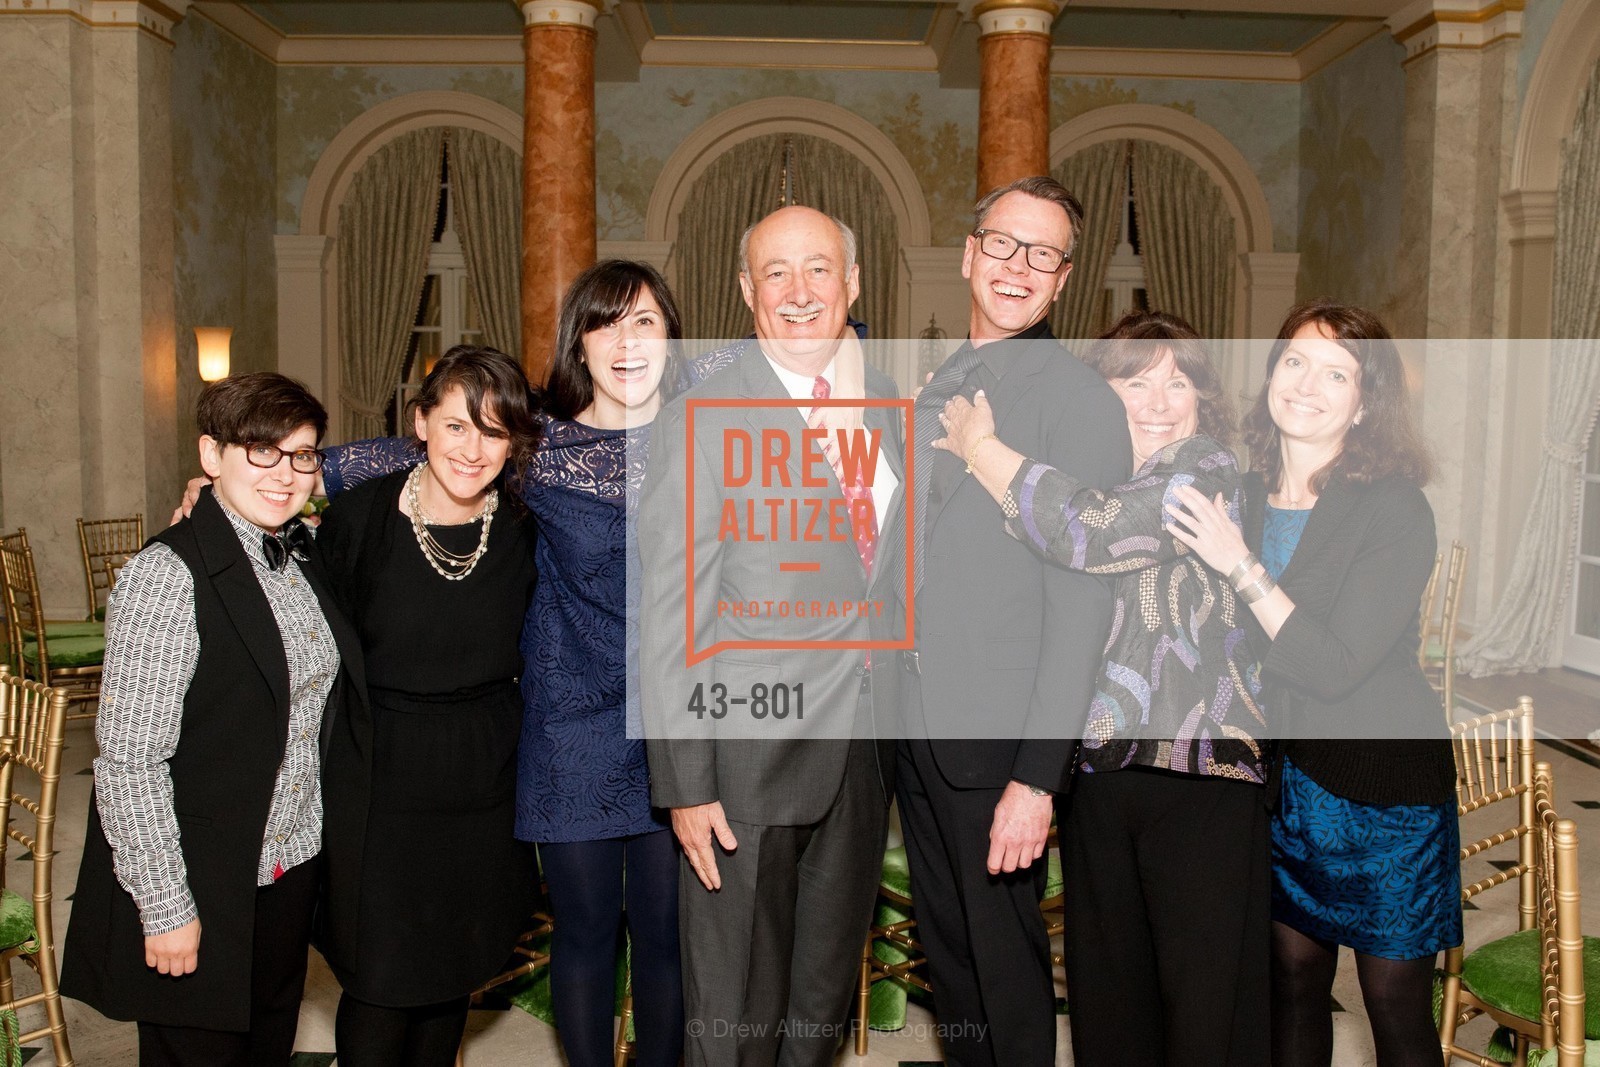 Arielle Johnson, Meredith Johnson, Sharal Camisa, Don Dana, H Gregory, Paddy Moore, Rachel Roberts, GETTY Hosts Leakey Foundation Dinner, US, April 24th, 2015,Drew Altizer, Drew Altizer Photography, full-service agency, private events, San Francisco photographer, photographer california